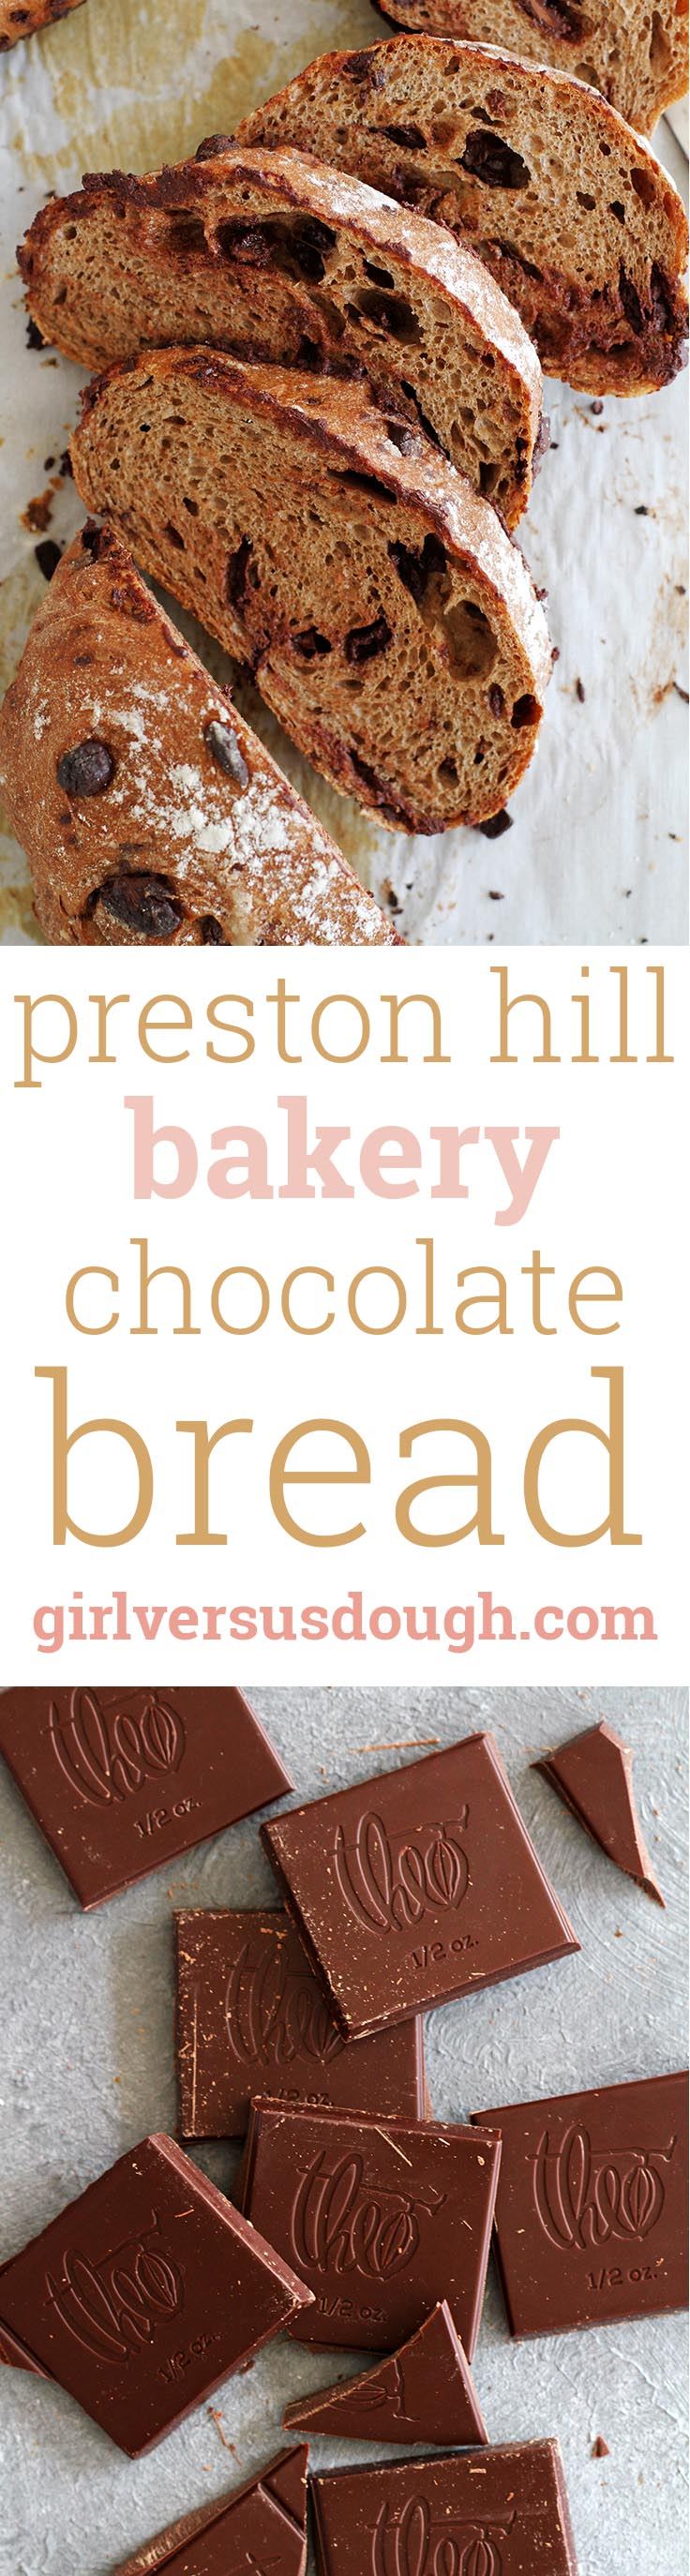 Preston Hill Bakery Chocolate Bread -- A recipe for soft, chewy, slightly sweet bread studded with bits of quality dark and milk chocolate, straight from the Theo Chocolate cookbook. girlversusdough.com @girlversusdough